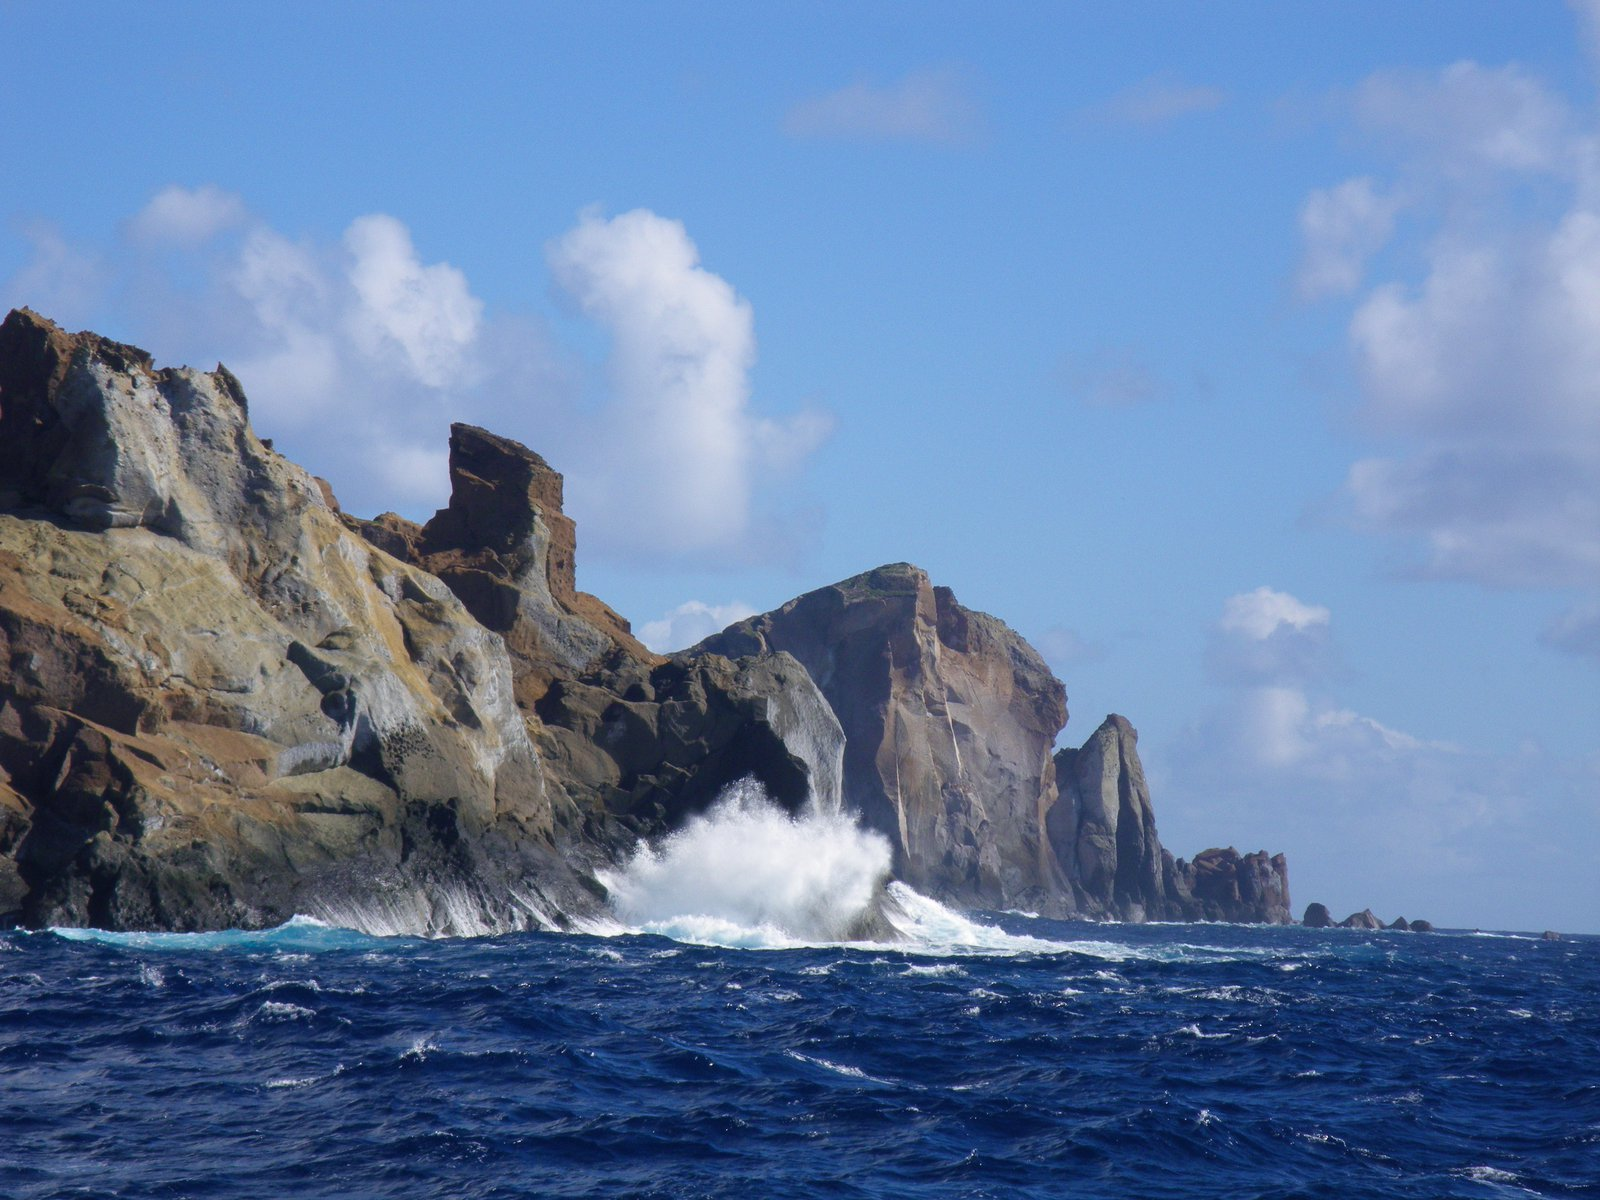 Curtis Island, Kermadec Islands